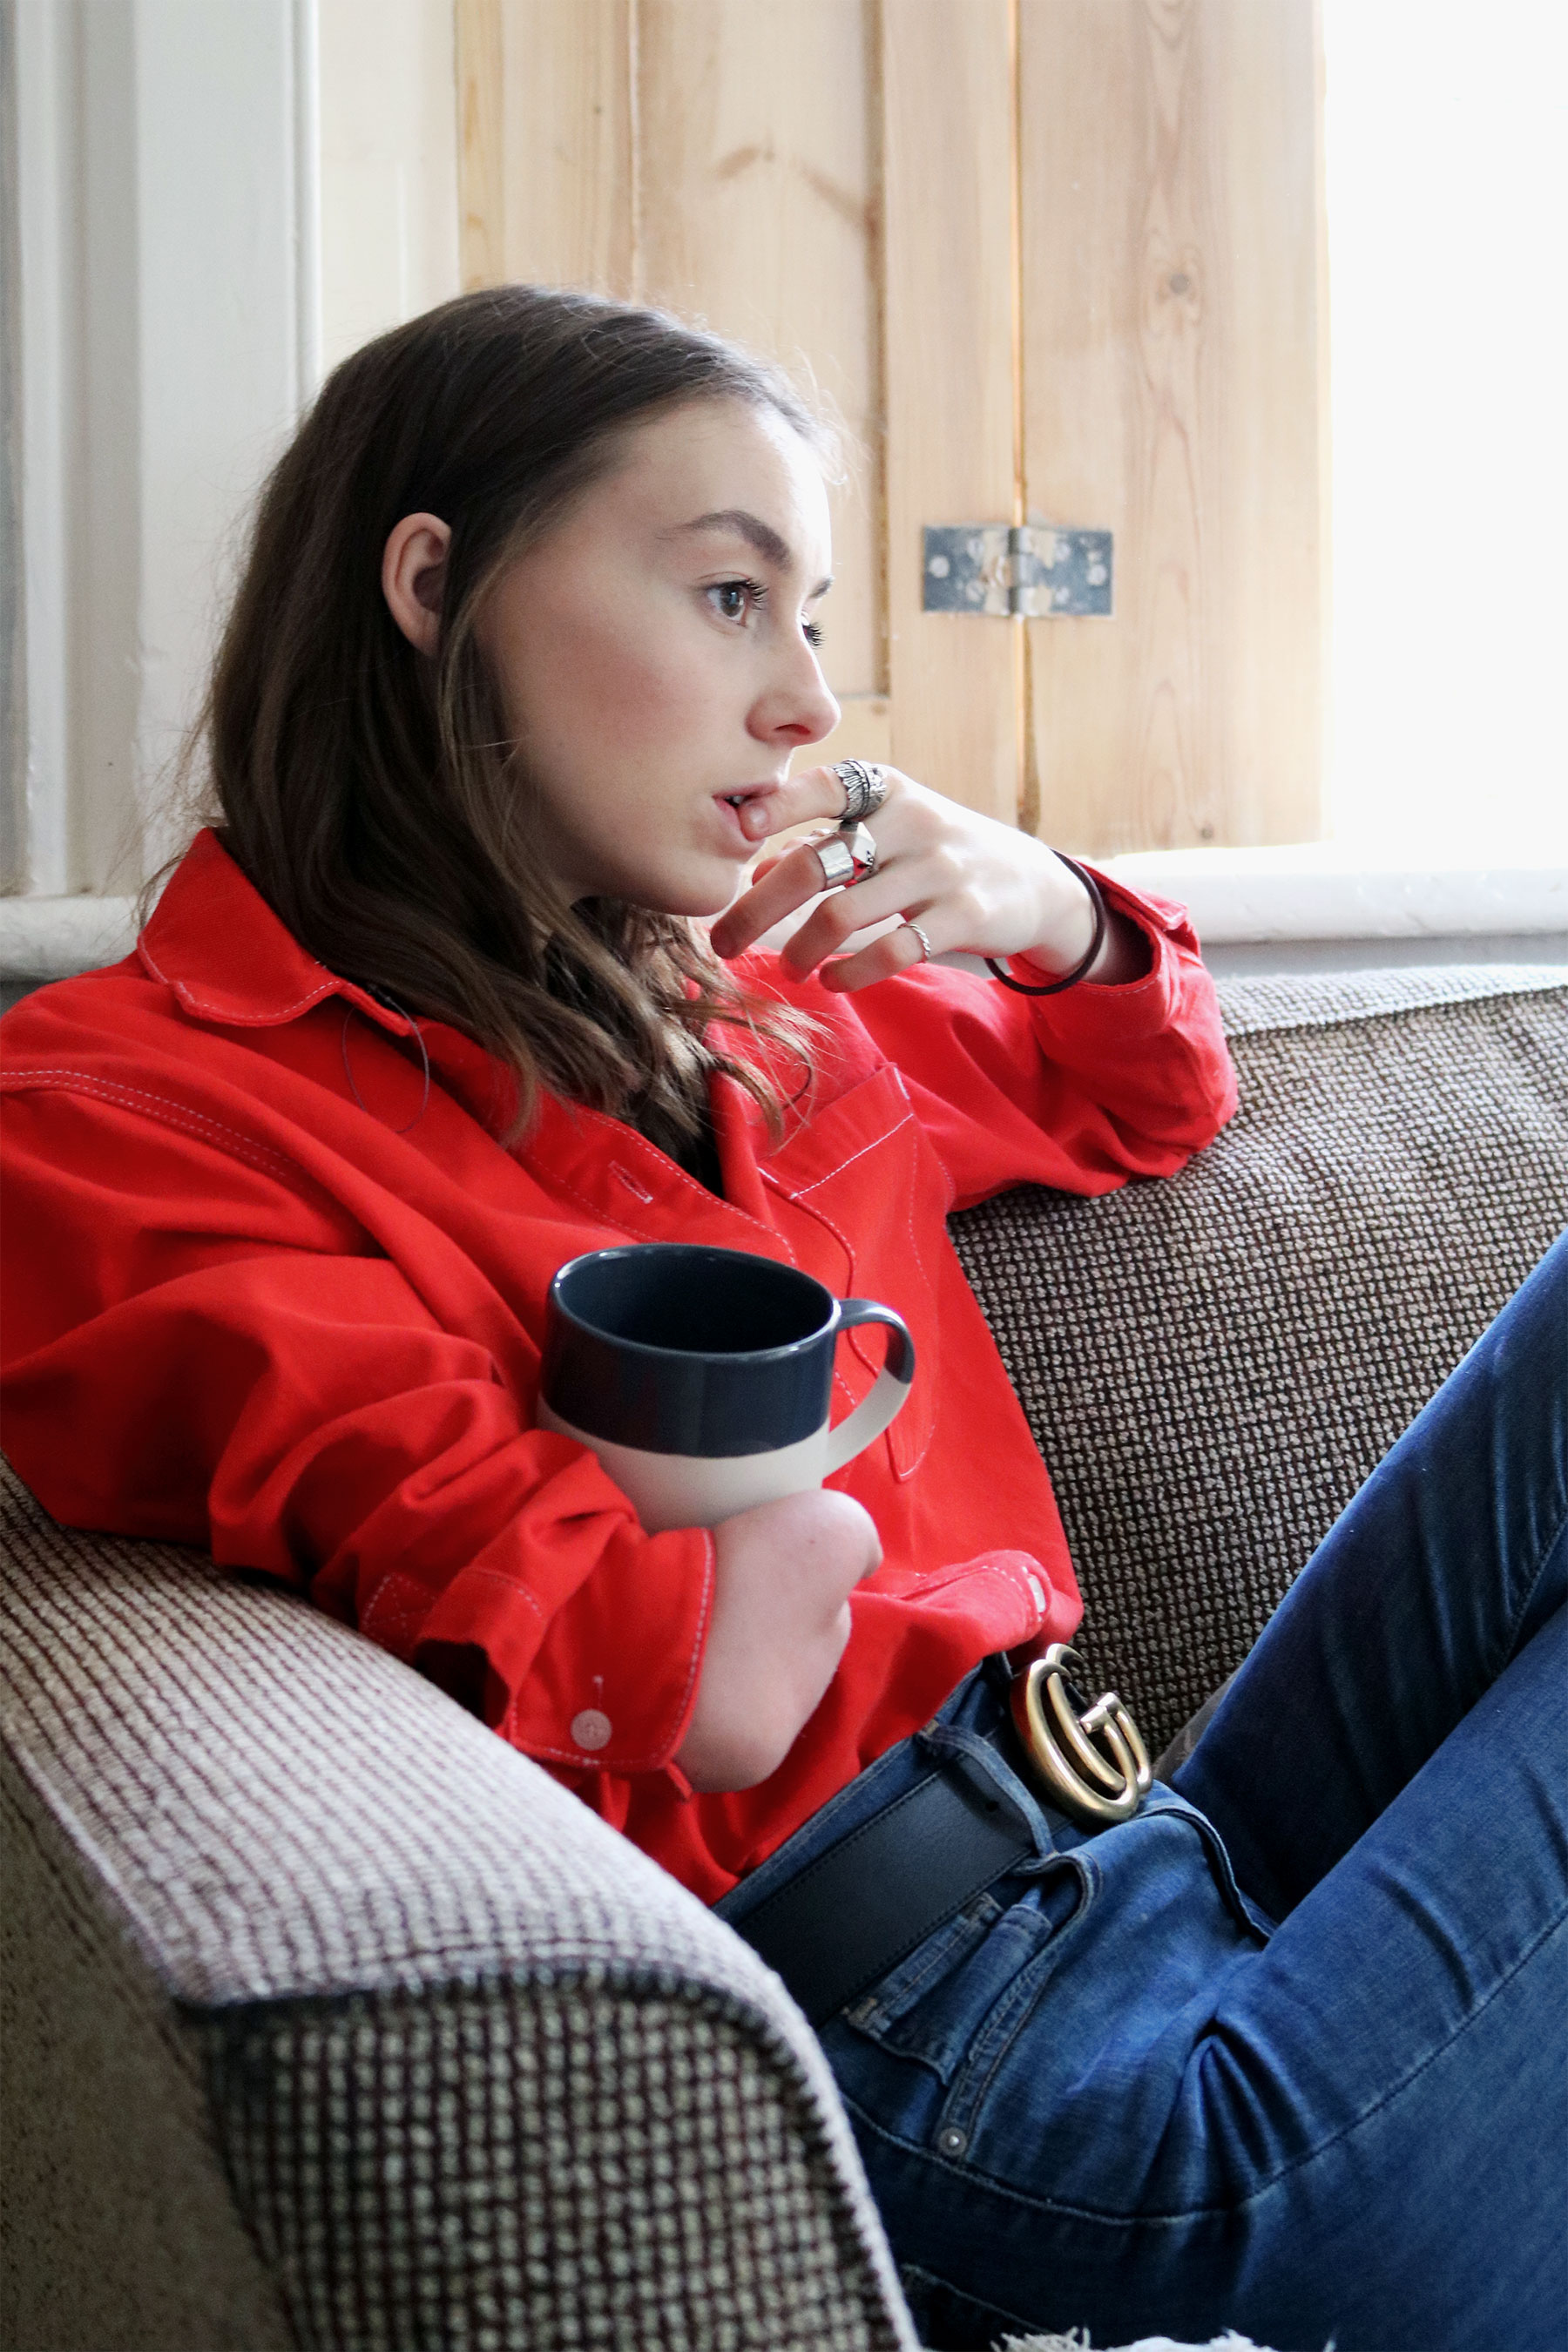 Grace Mandeville ootd, diverse, one hand girl, amputee, grace mandeville, red shirt, outfit, gucci belt, blogger,